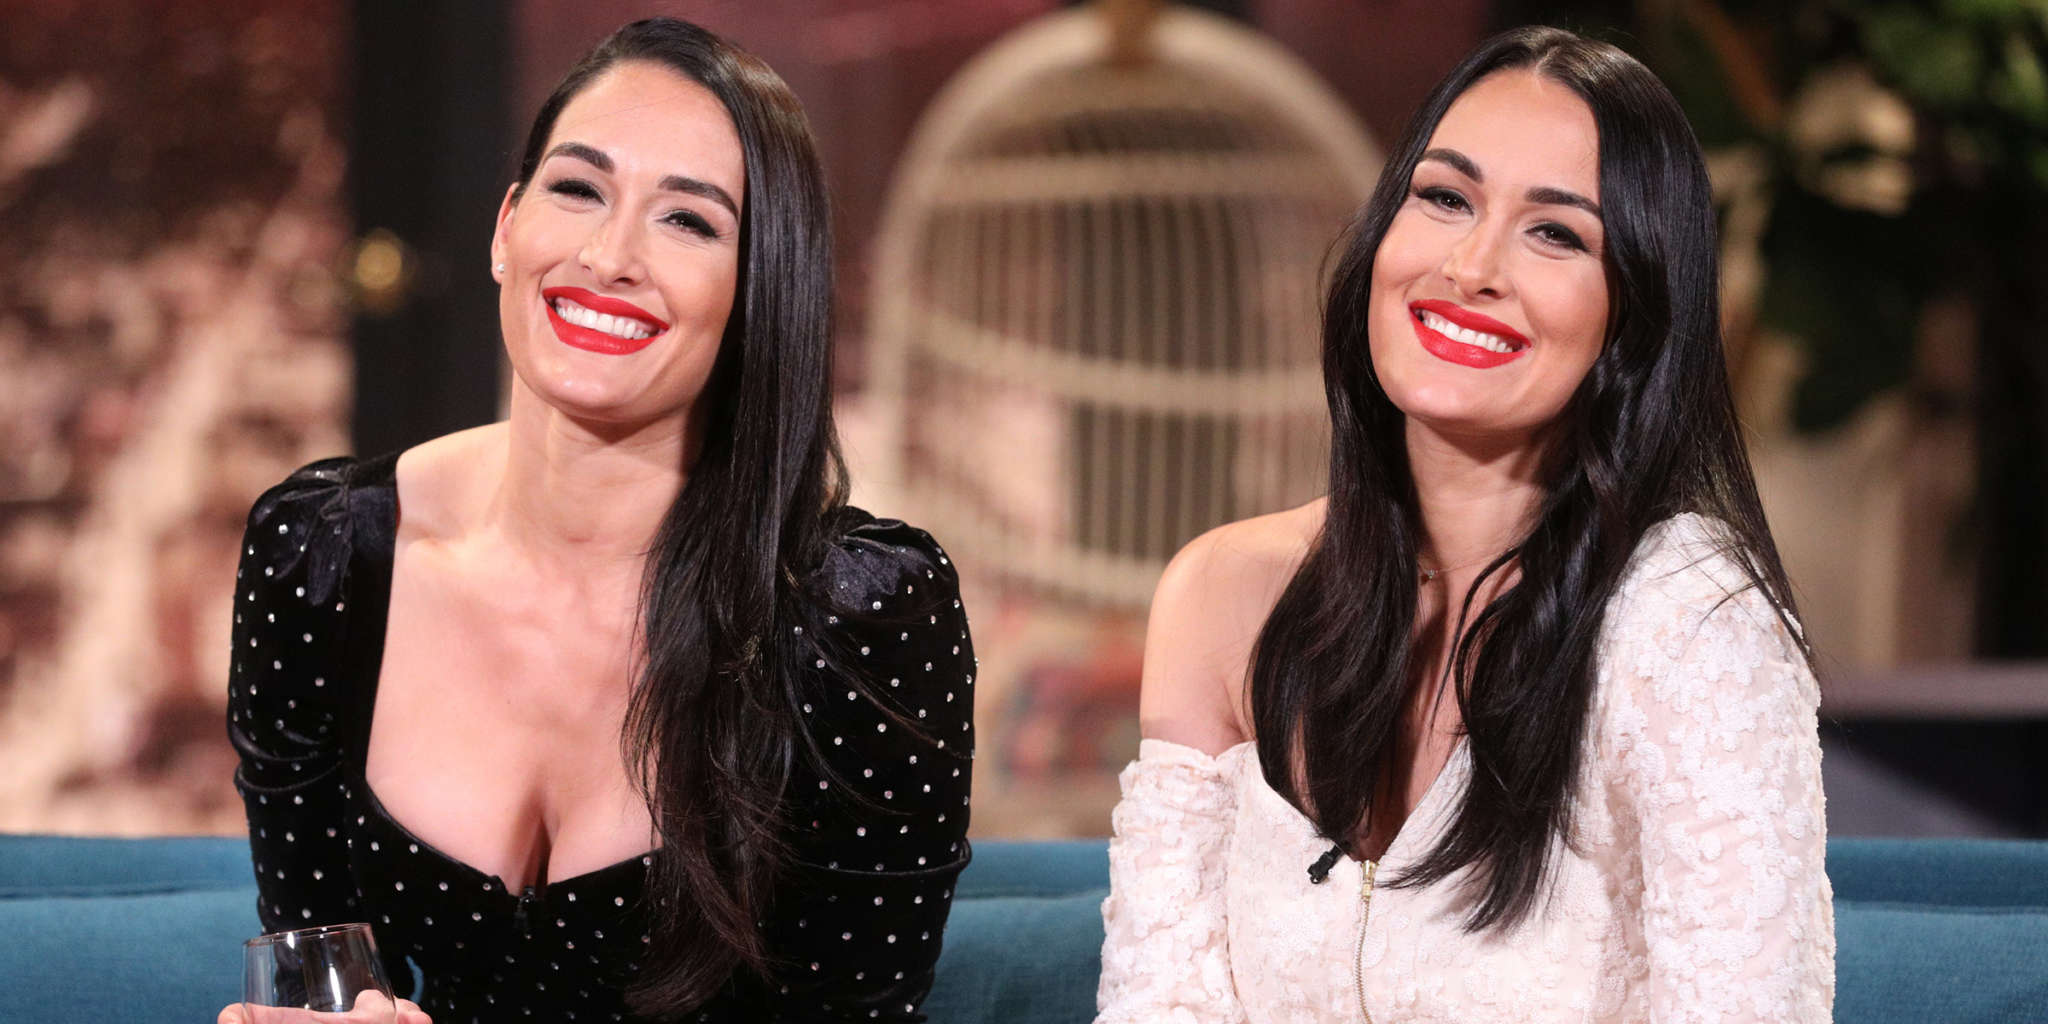 Brie Bella Says She's Done Having Kids – Reveals She Got Her Tubes Tied!